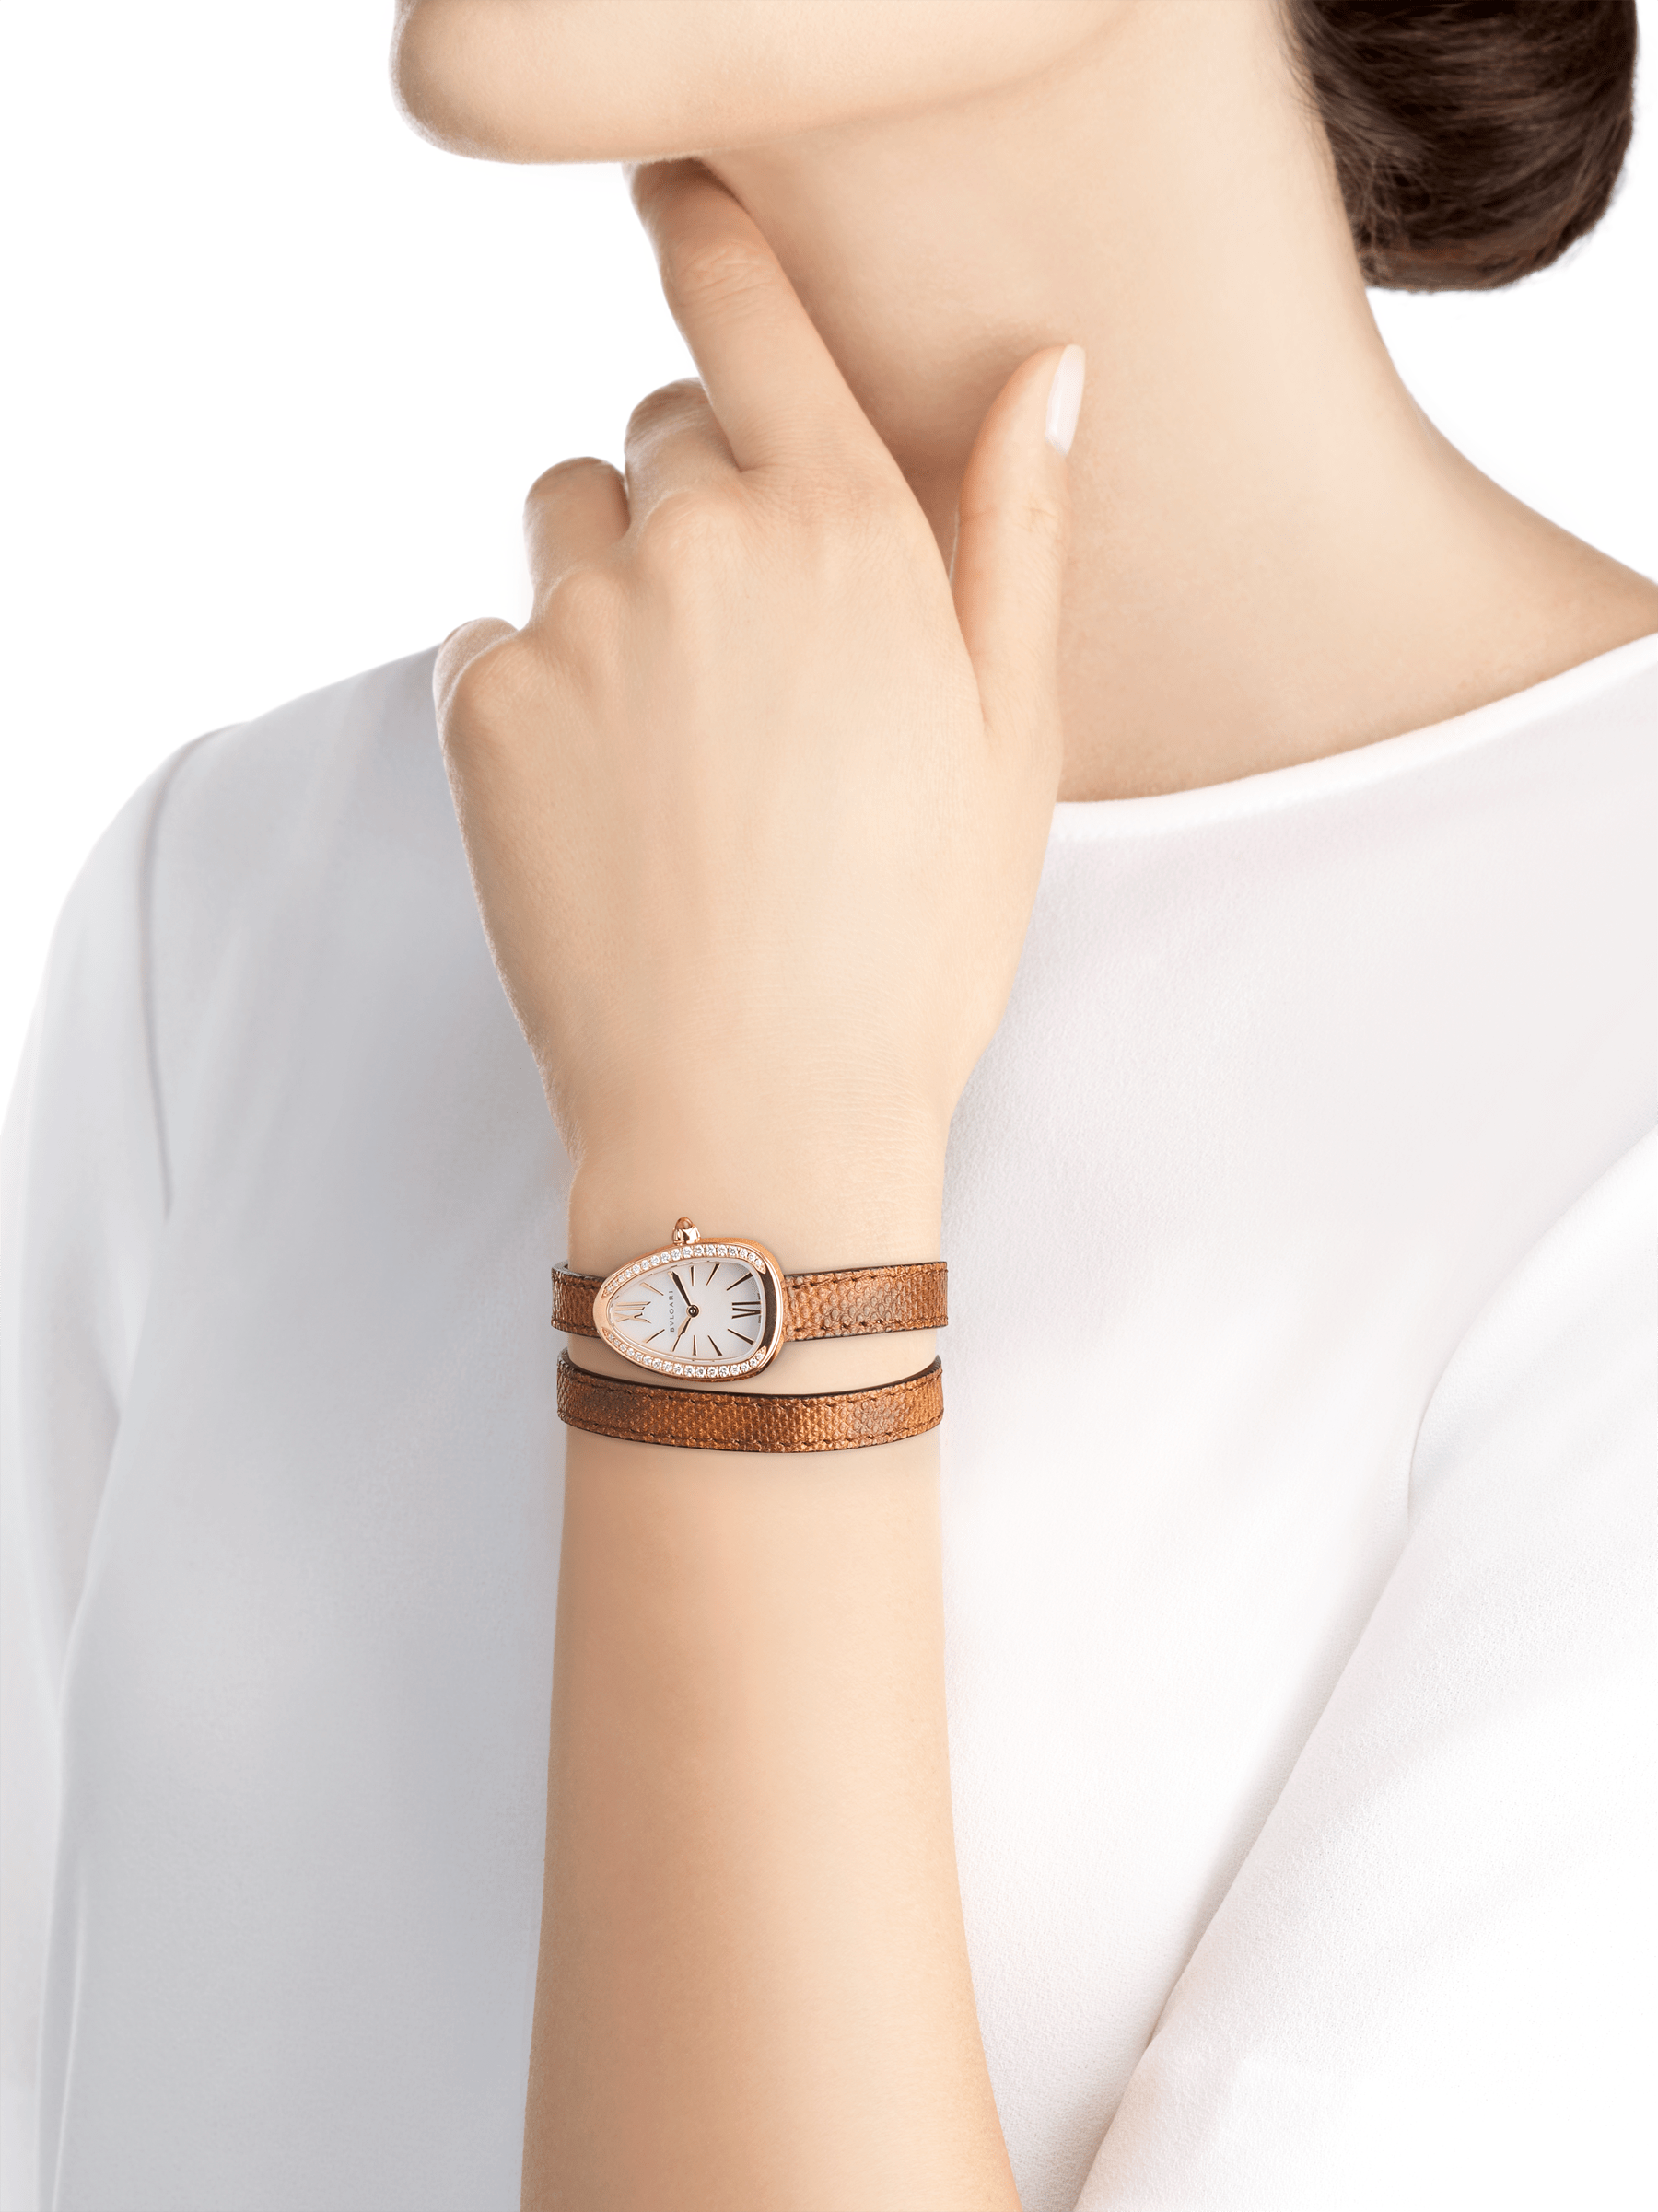 Serpenti watch with 18 kt rose gold case set with brilliant cut diamonds, white mother-of-pearl dial and interchangeable double spiral bracelet in brown karung leather. 102727 image 4